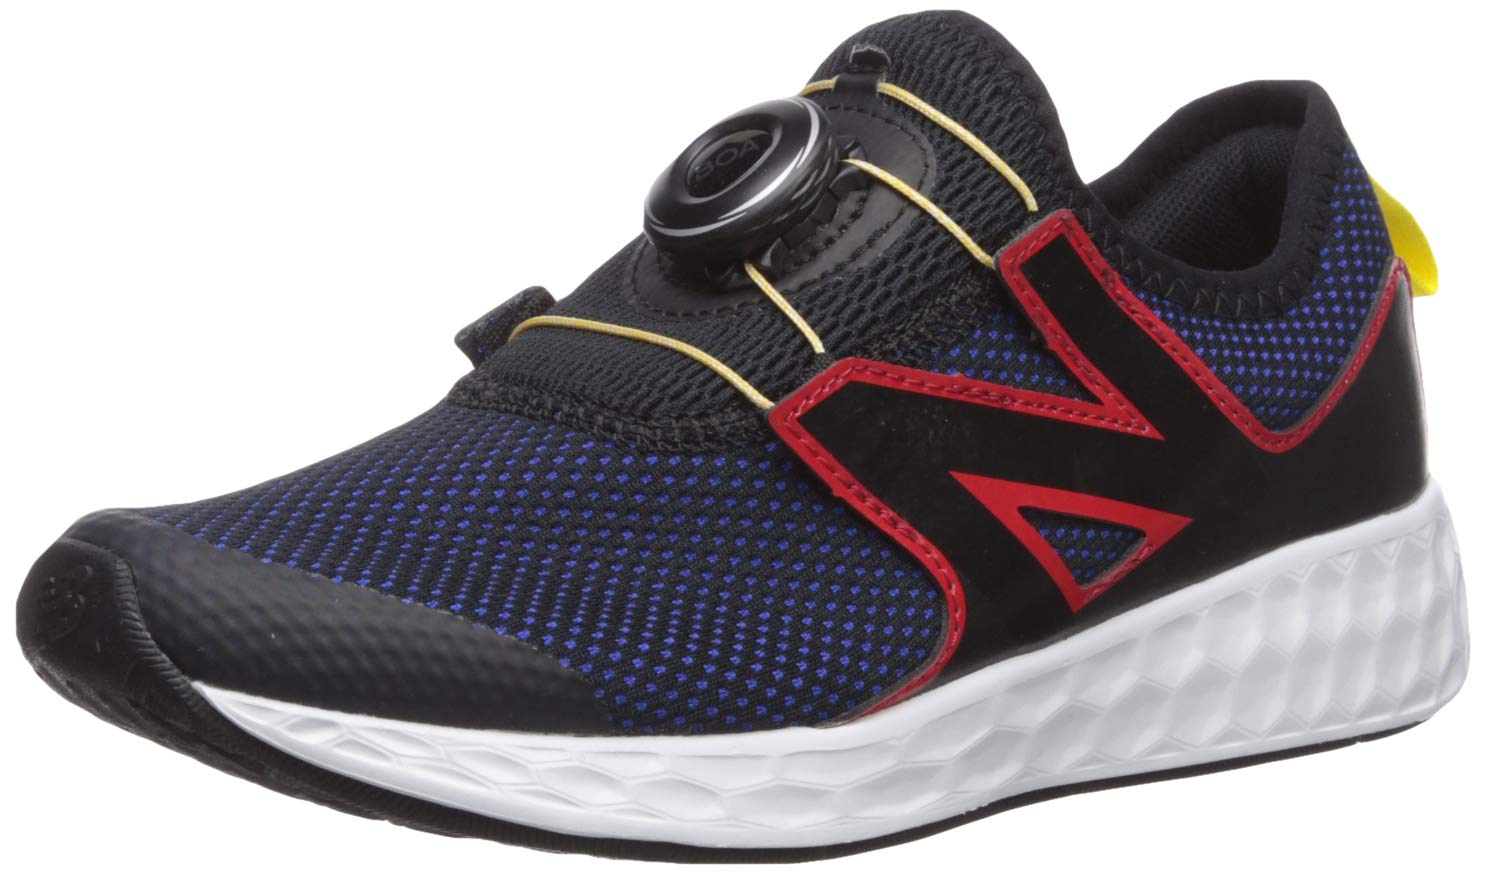 New Balance Boys' N Speed V1 Running Shoe, Black/UV Blue/Team RED, 6 M US Big Kid